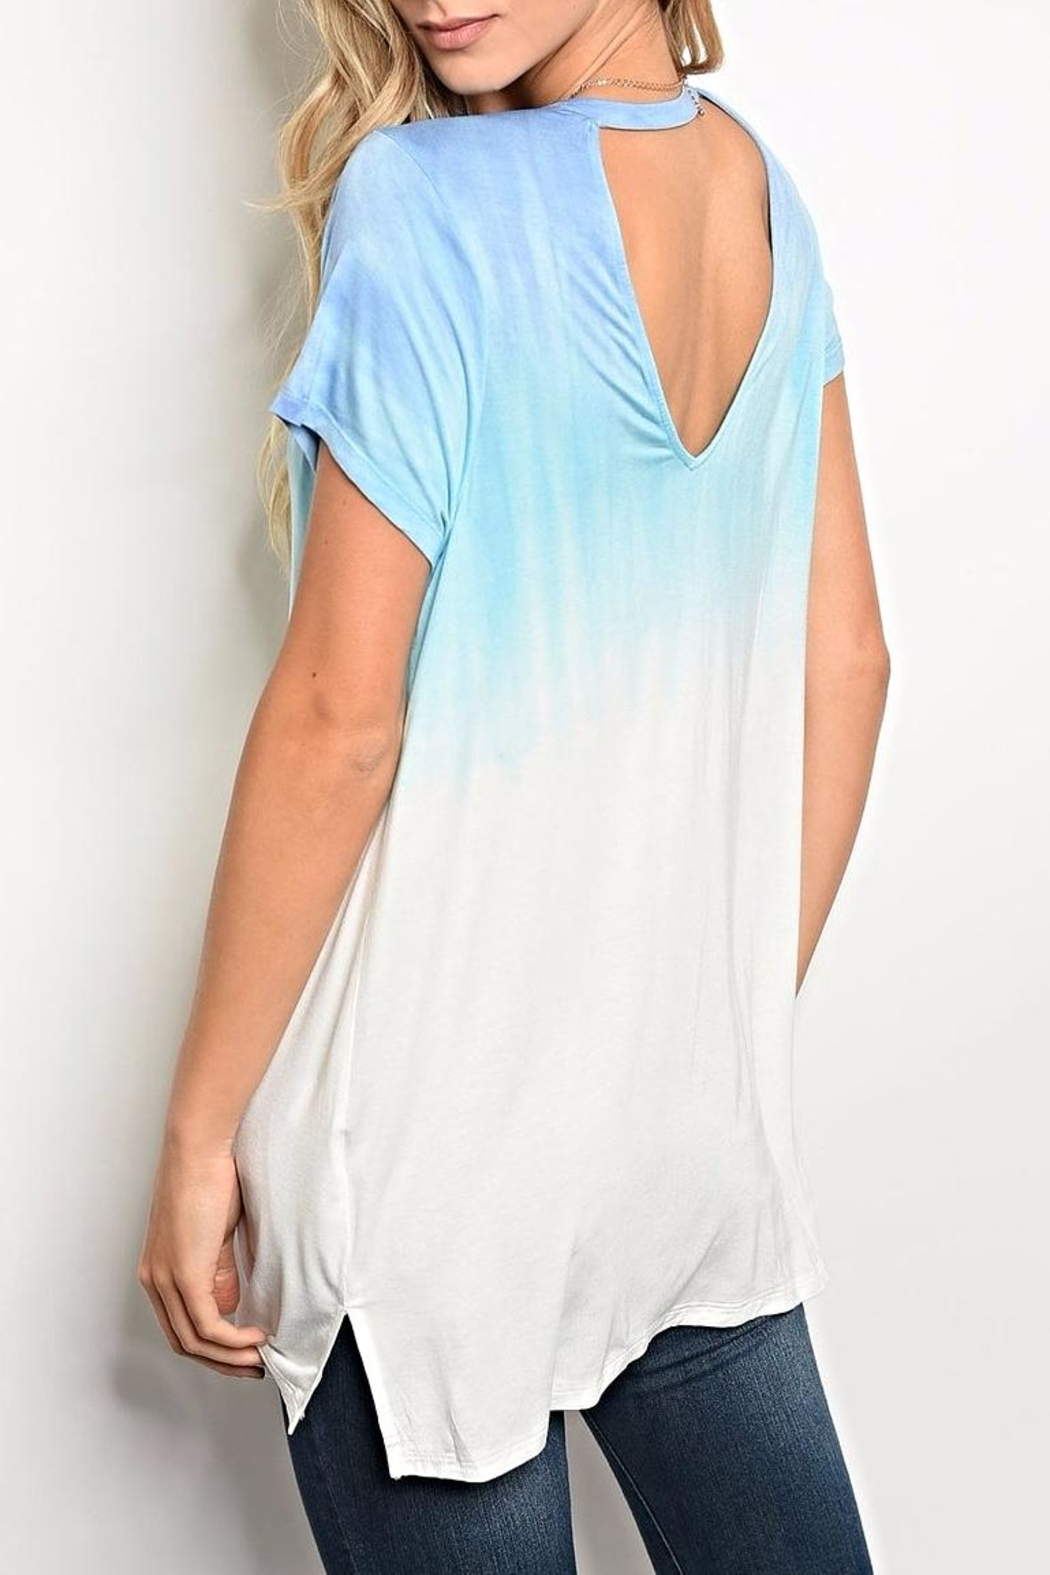 Kori Blue Ombre Tee - Front Full Image